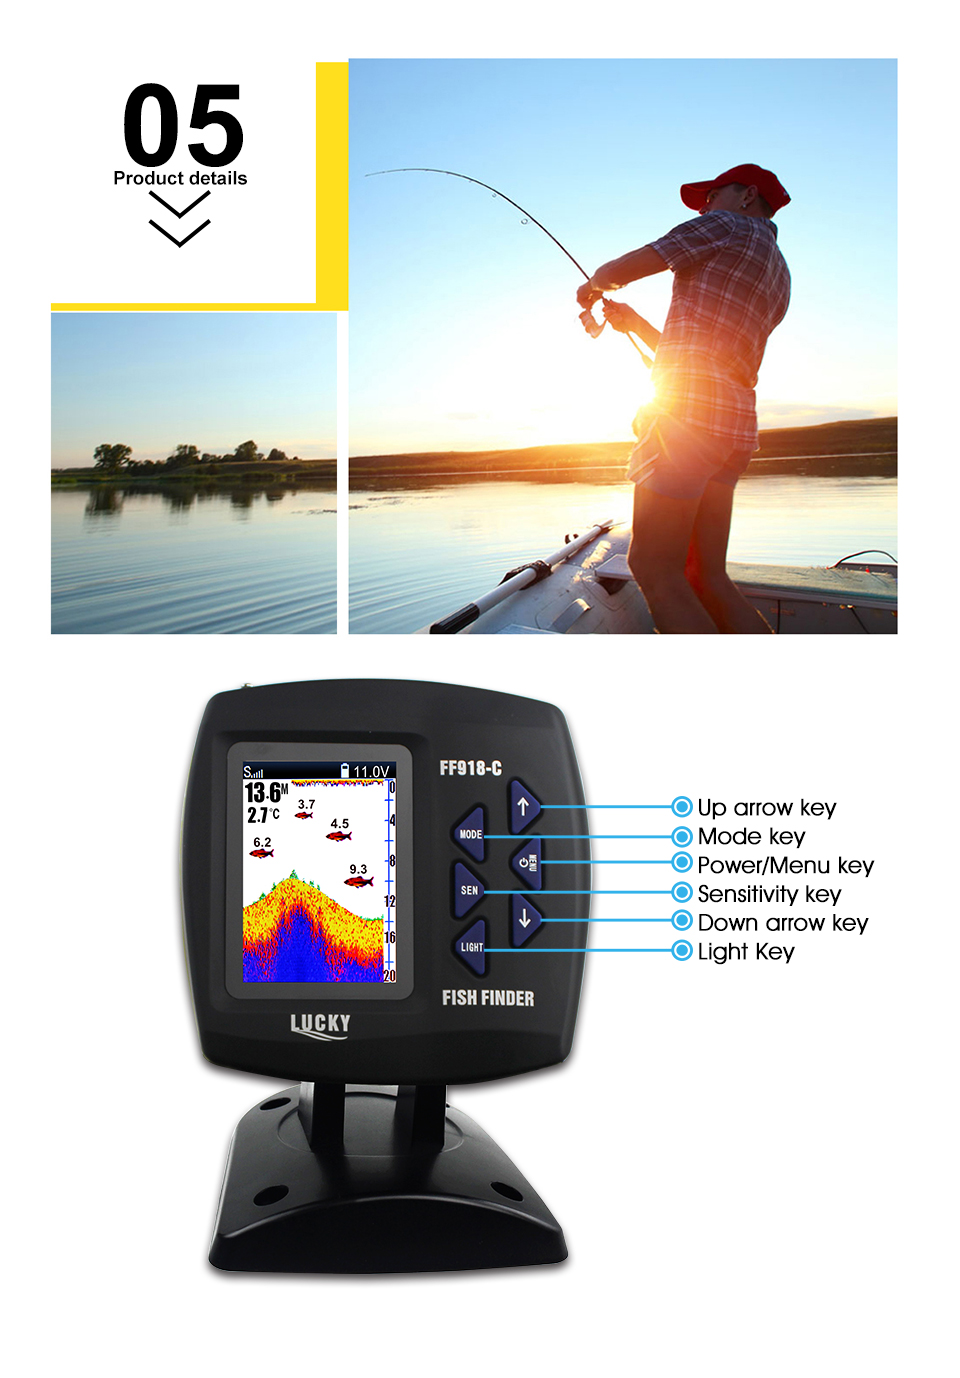 Fish Finder Lucky FF918-CWLS 3.5 LCD Boat Fish Finder wireless Underwater Detector Camera For fishing operating range 300m Depth Range 100M (6)